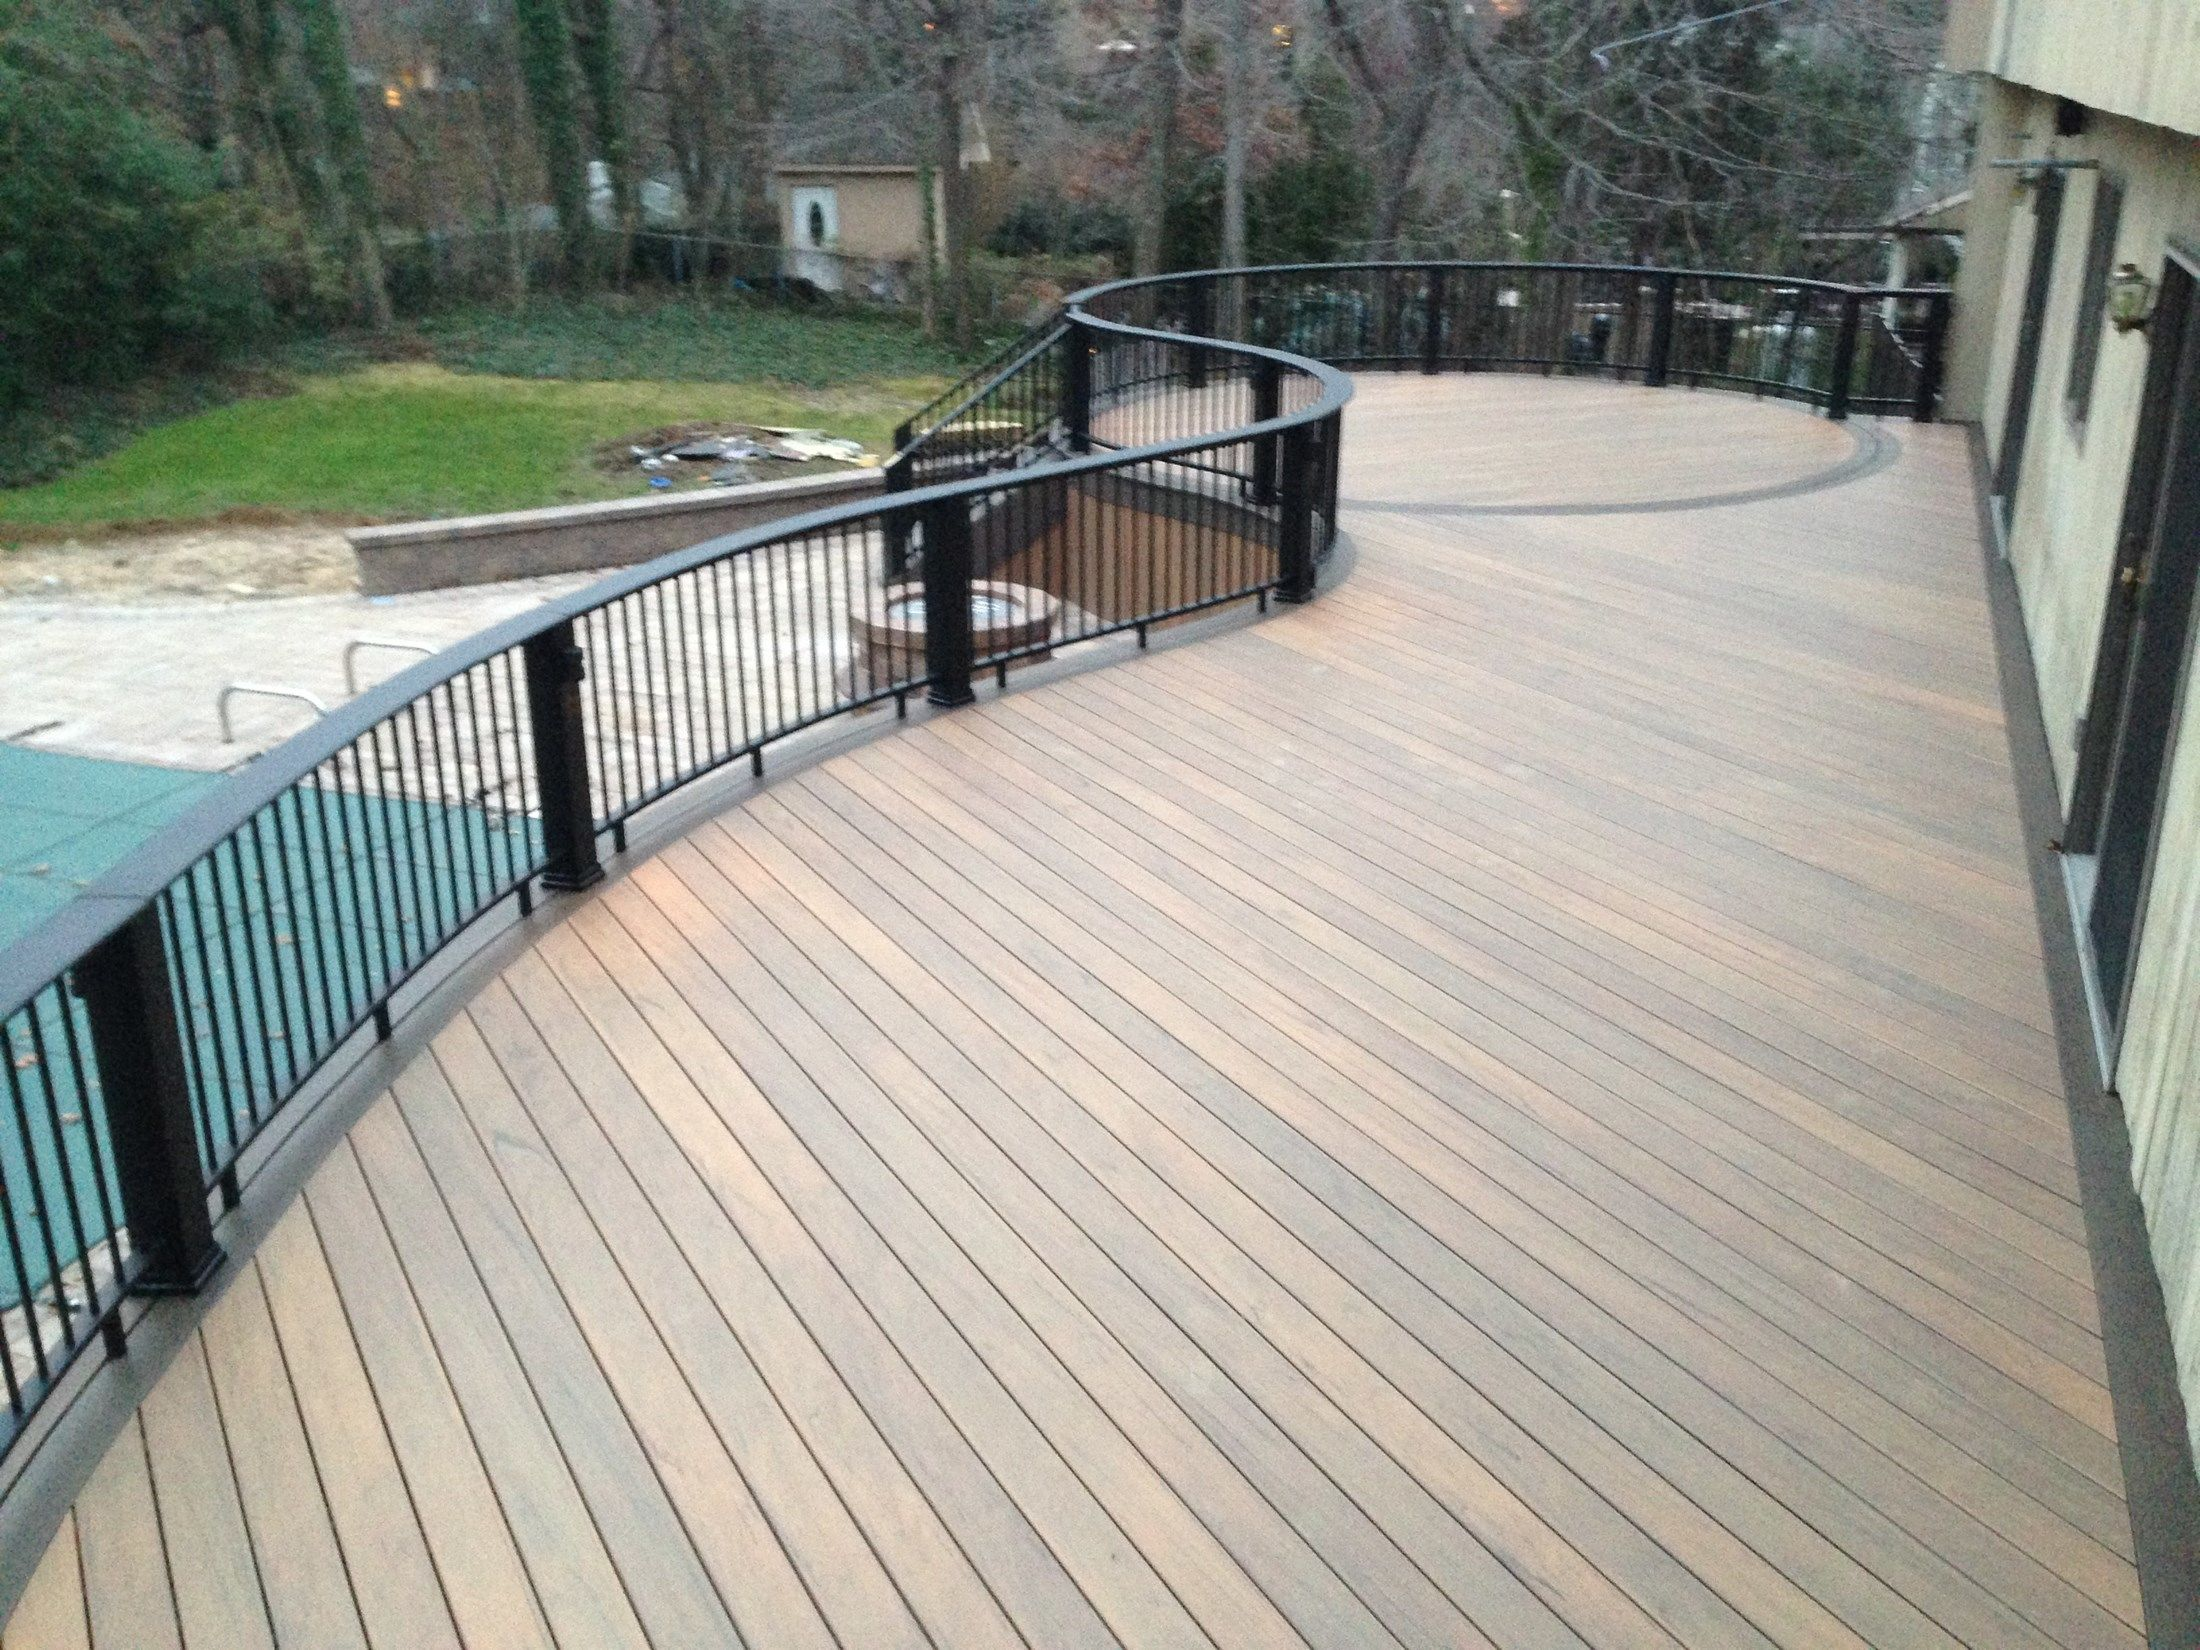 Wood Plastic Composite Decking : Decks composite decking material review